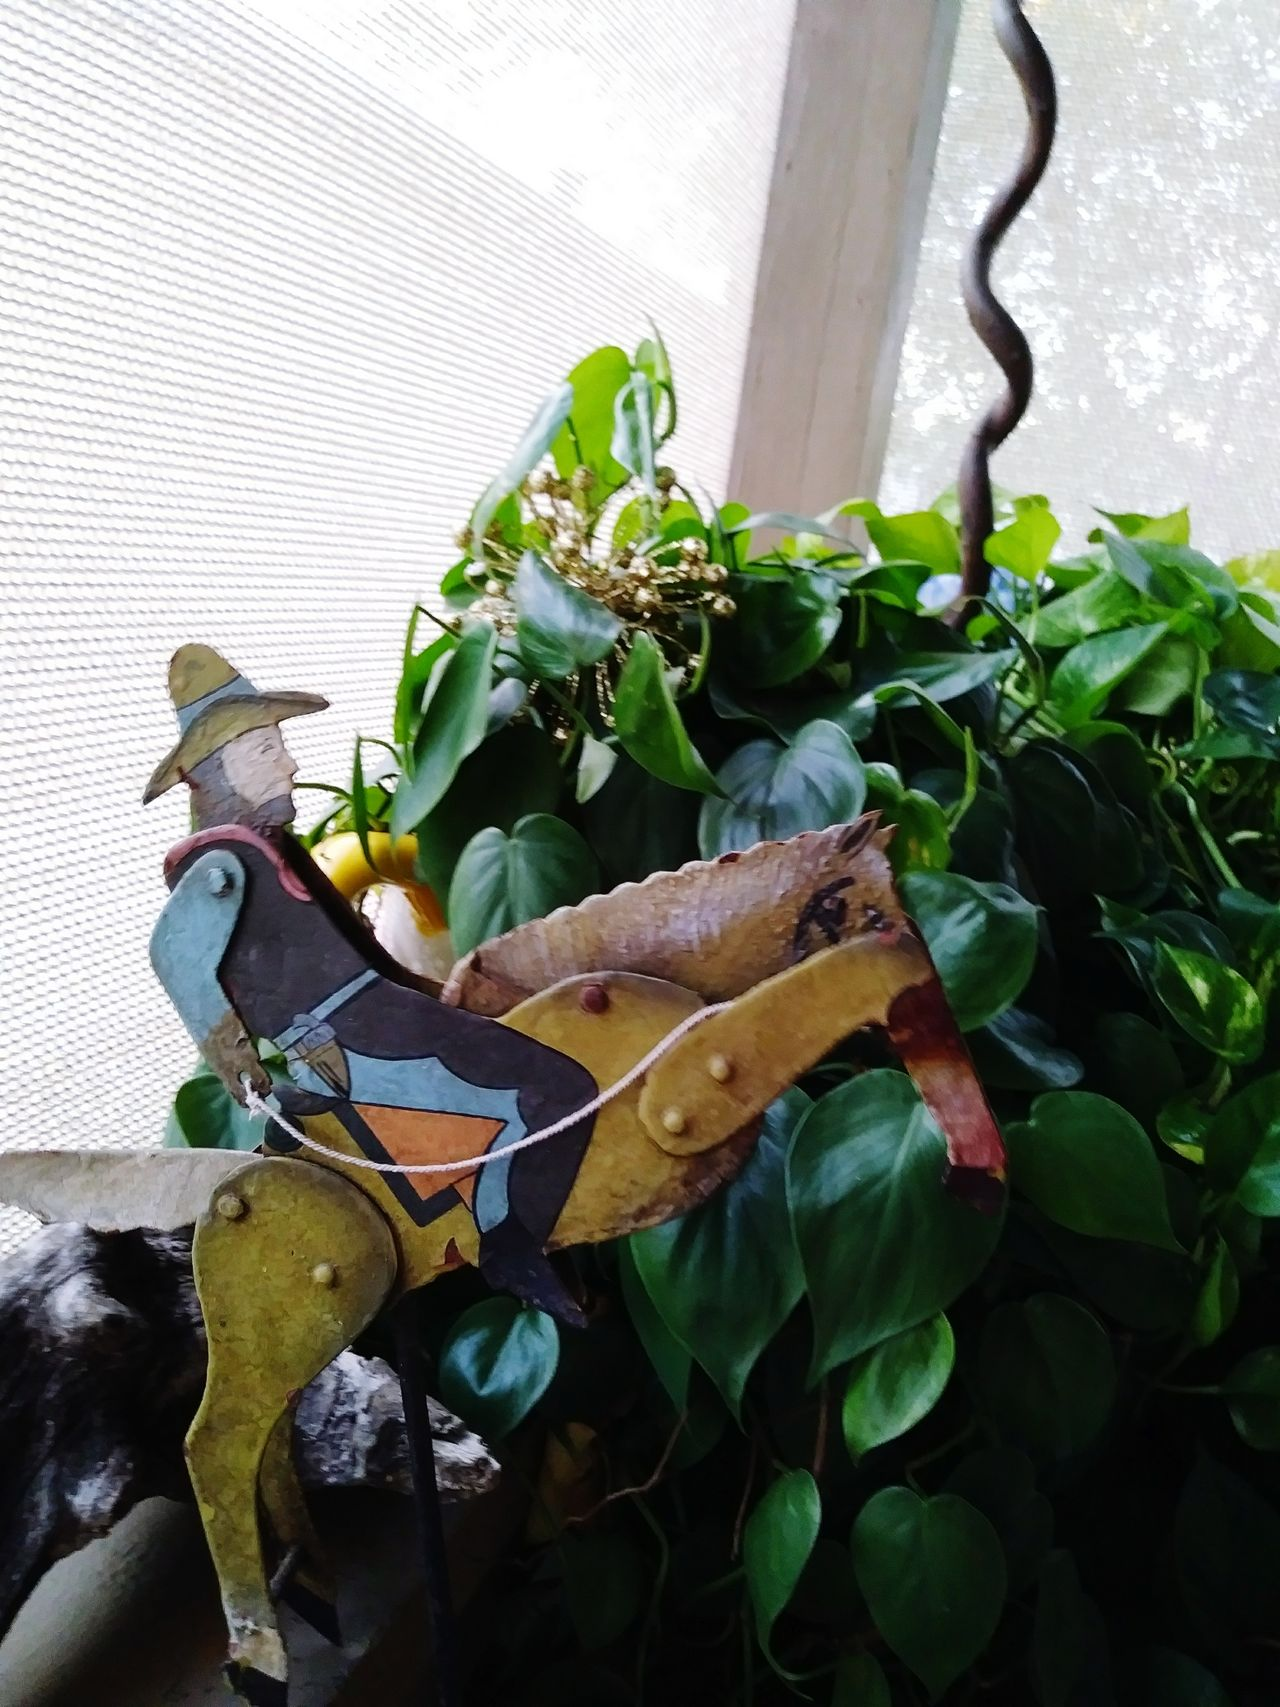 Leaf No People Vegetable Healthy Eating Indoors  Green Color Day Growth Freshness Food Close-up Nature Cowboy Town Cowboy Up Yard Art Porch Life Porch View Yeehaw Yeehaaa Old Toys Antiques Photography Antique Close Up Cowboy Hats  Old Cowboy Style Old Cowboy